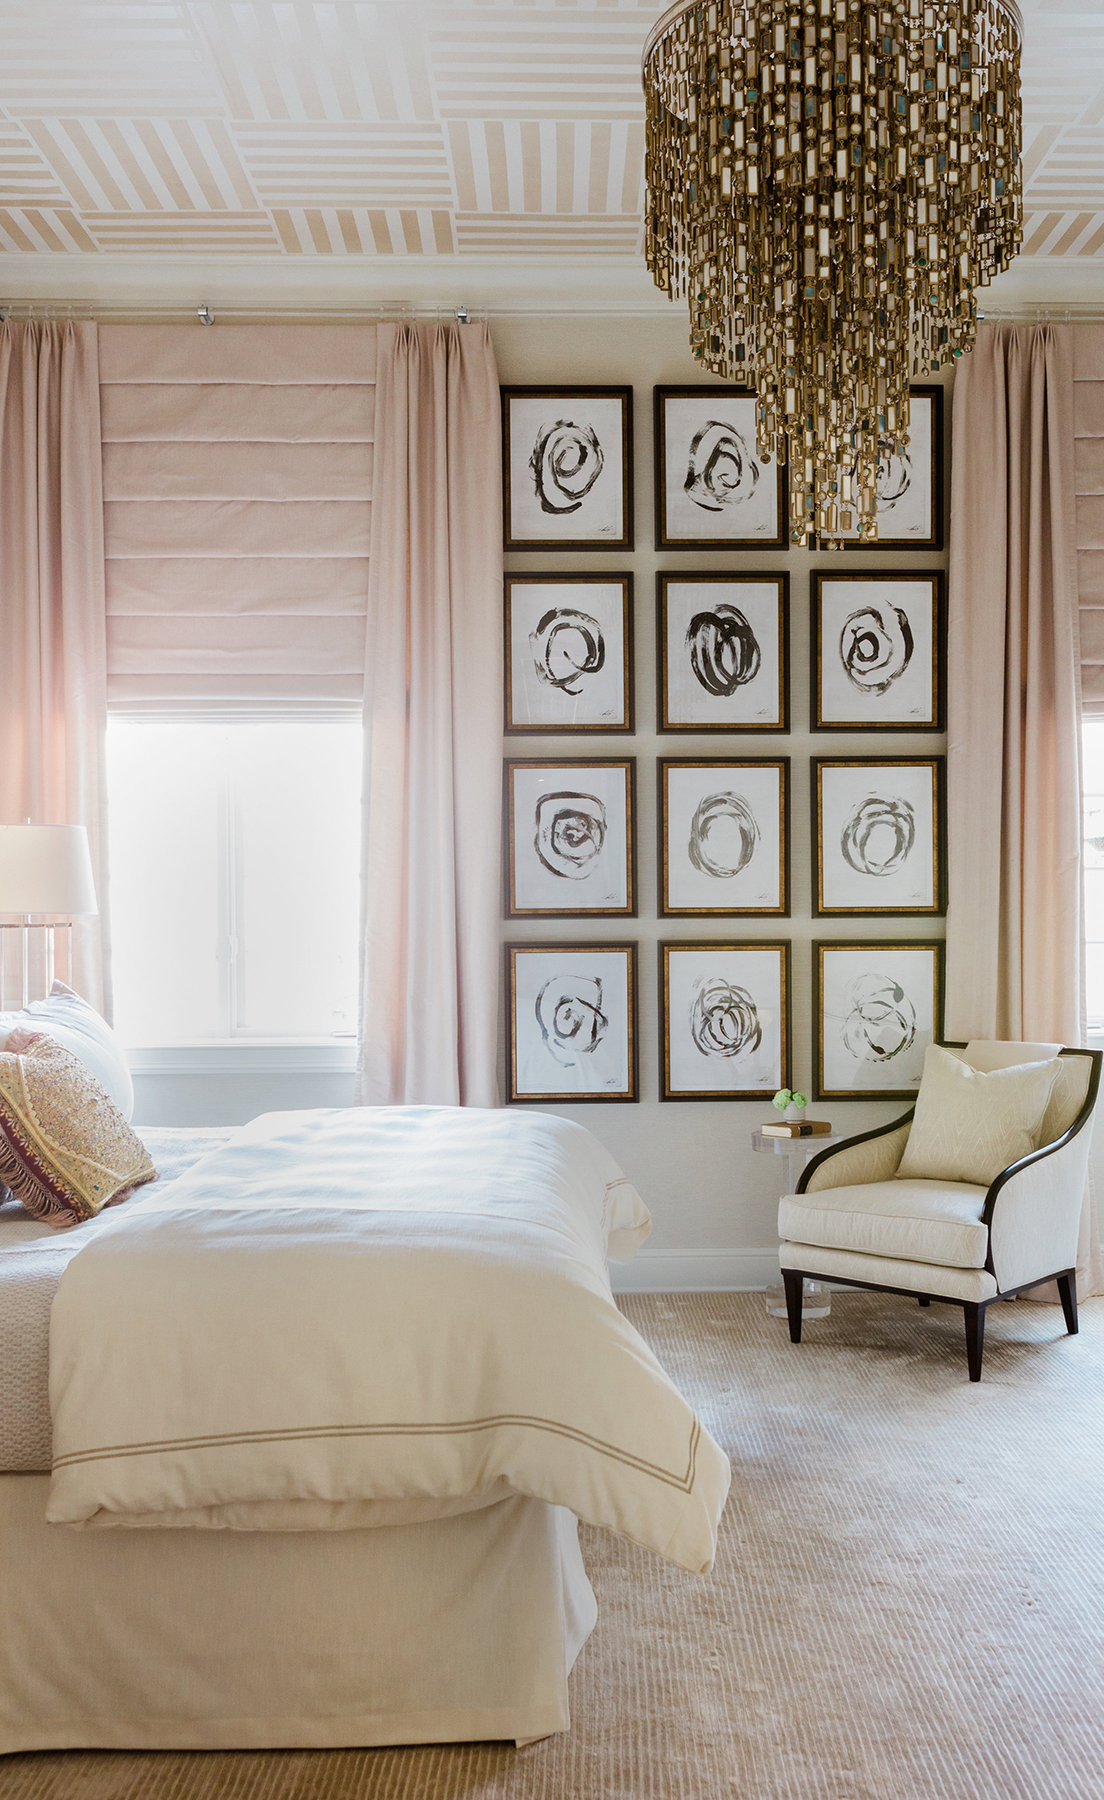 Anthony Michaels Design | Bedroom with Gallery Wall